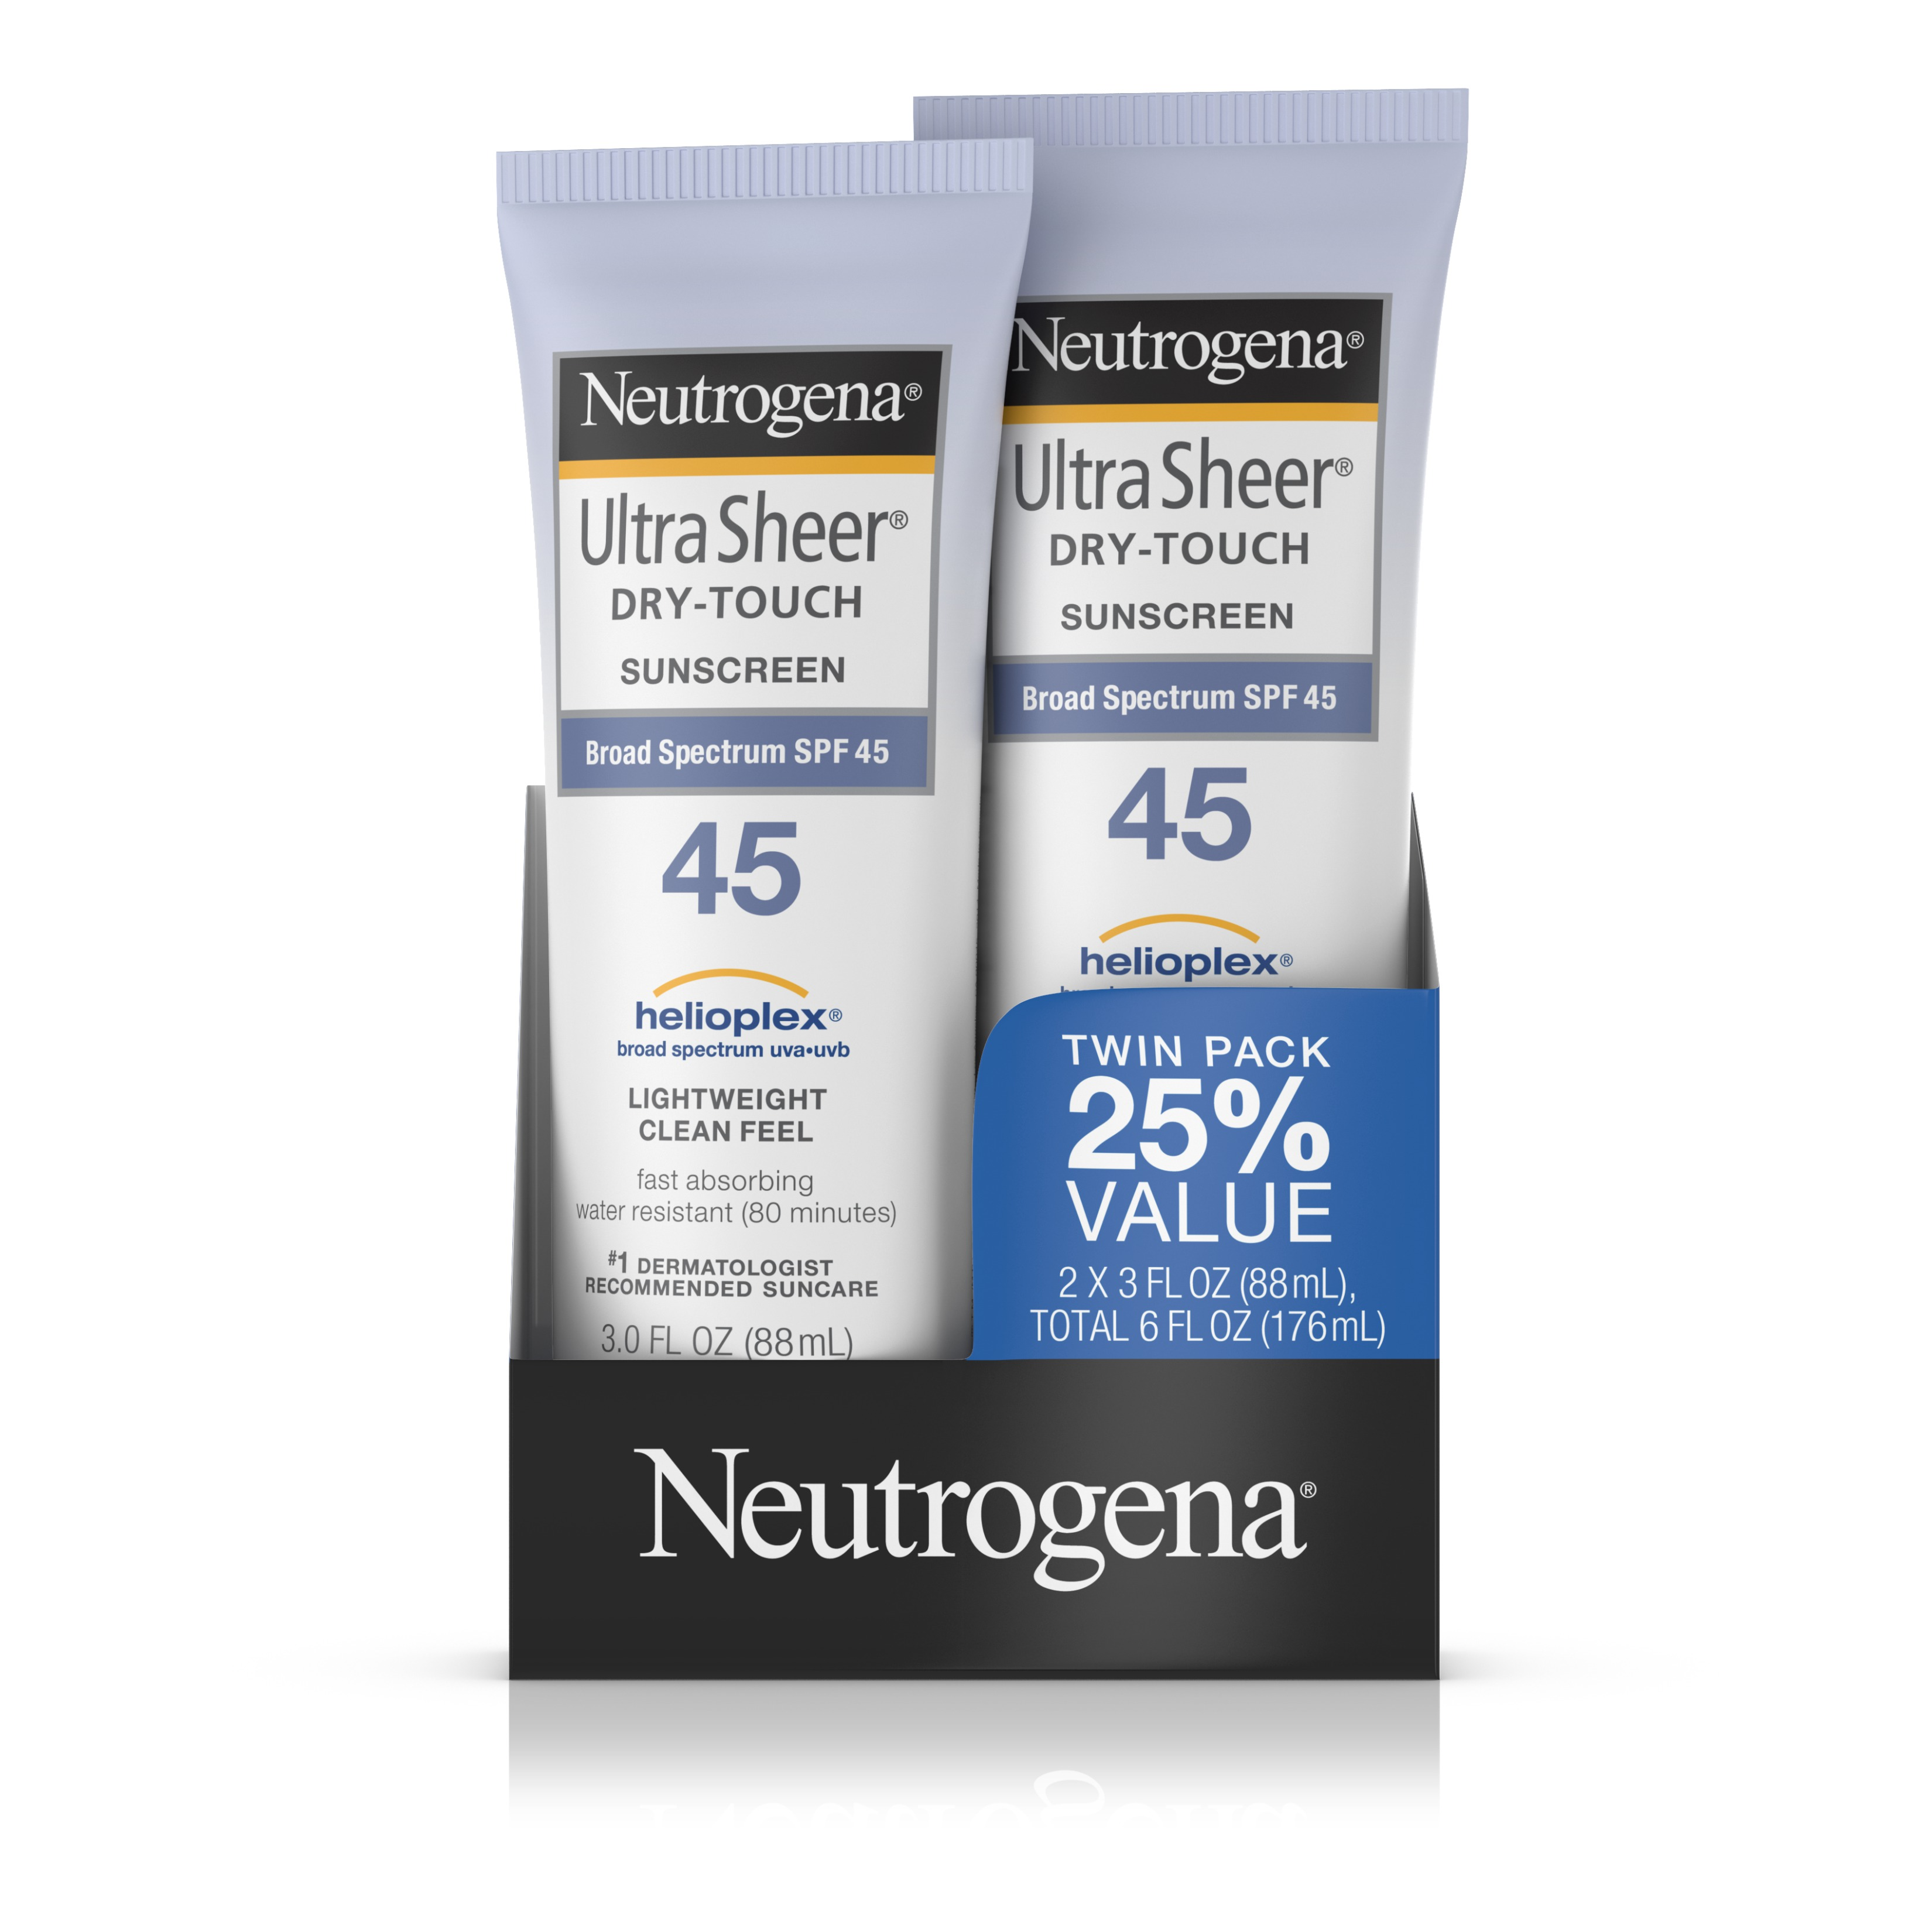 Neutrogena Ultra Sheer Dry-Touch Water Resistant Sunscreen SPF 45, 3 fl. oz, Pack of 2